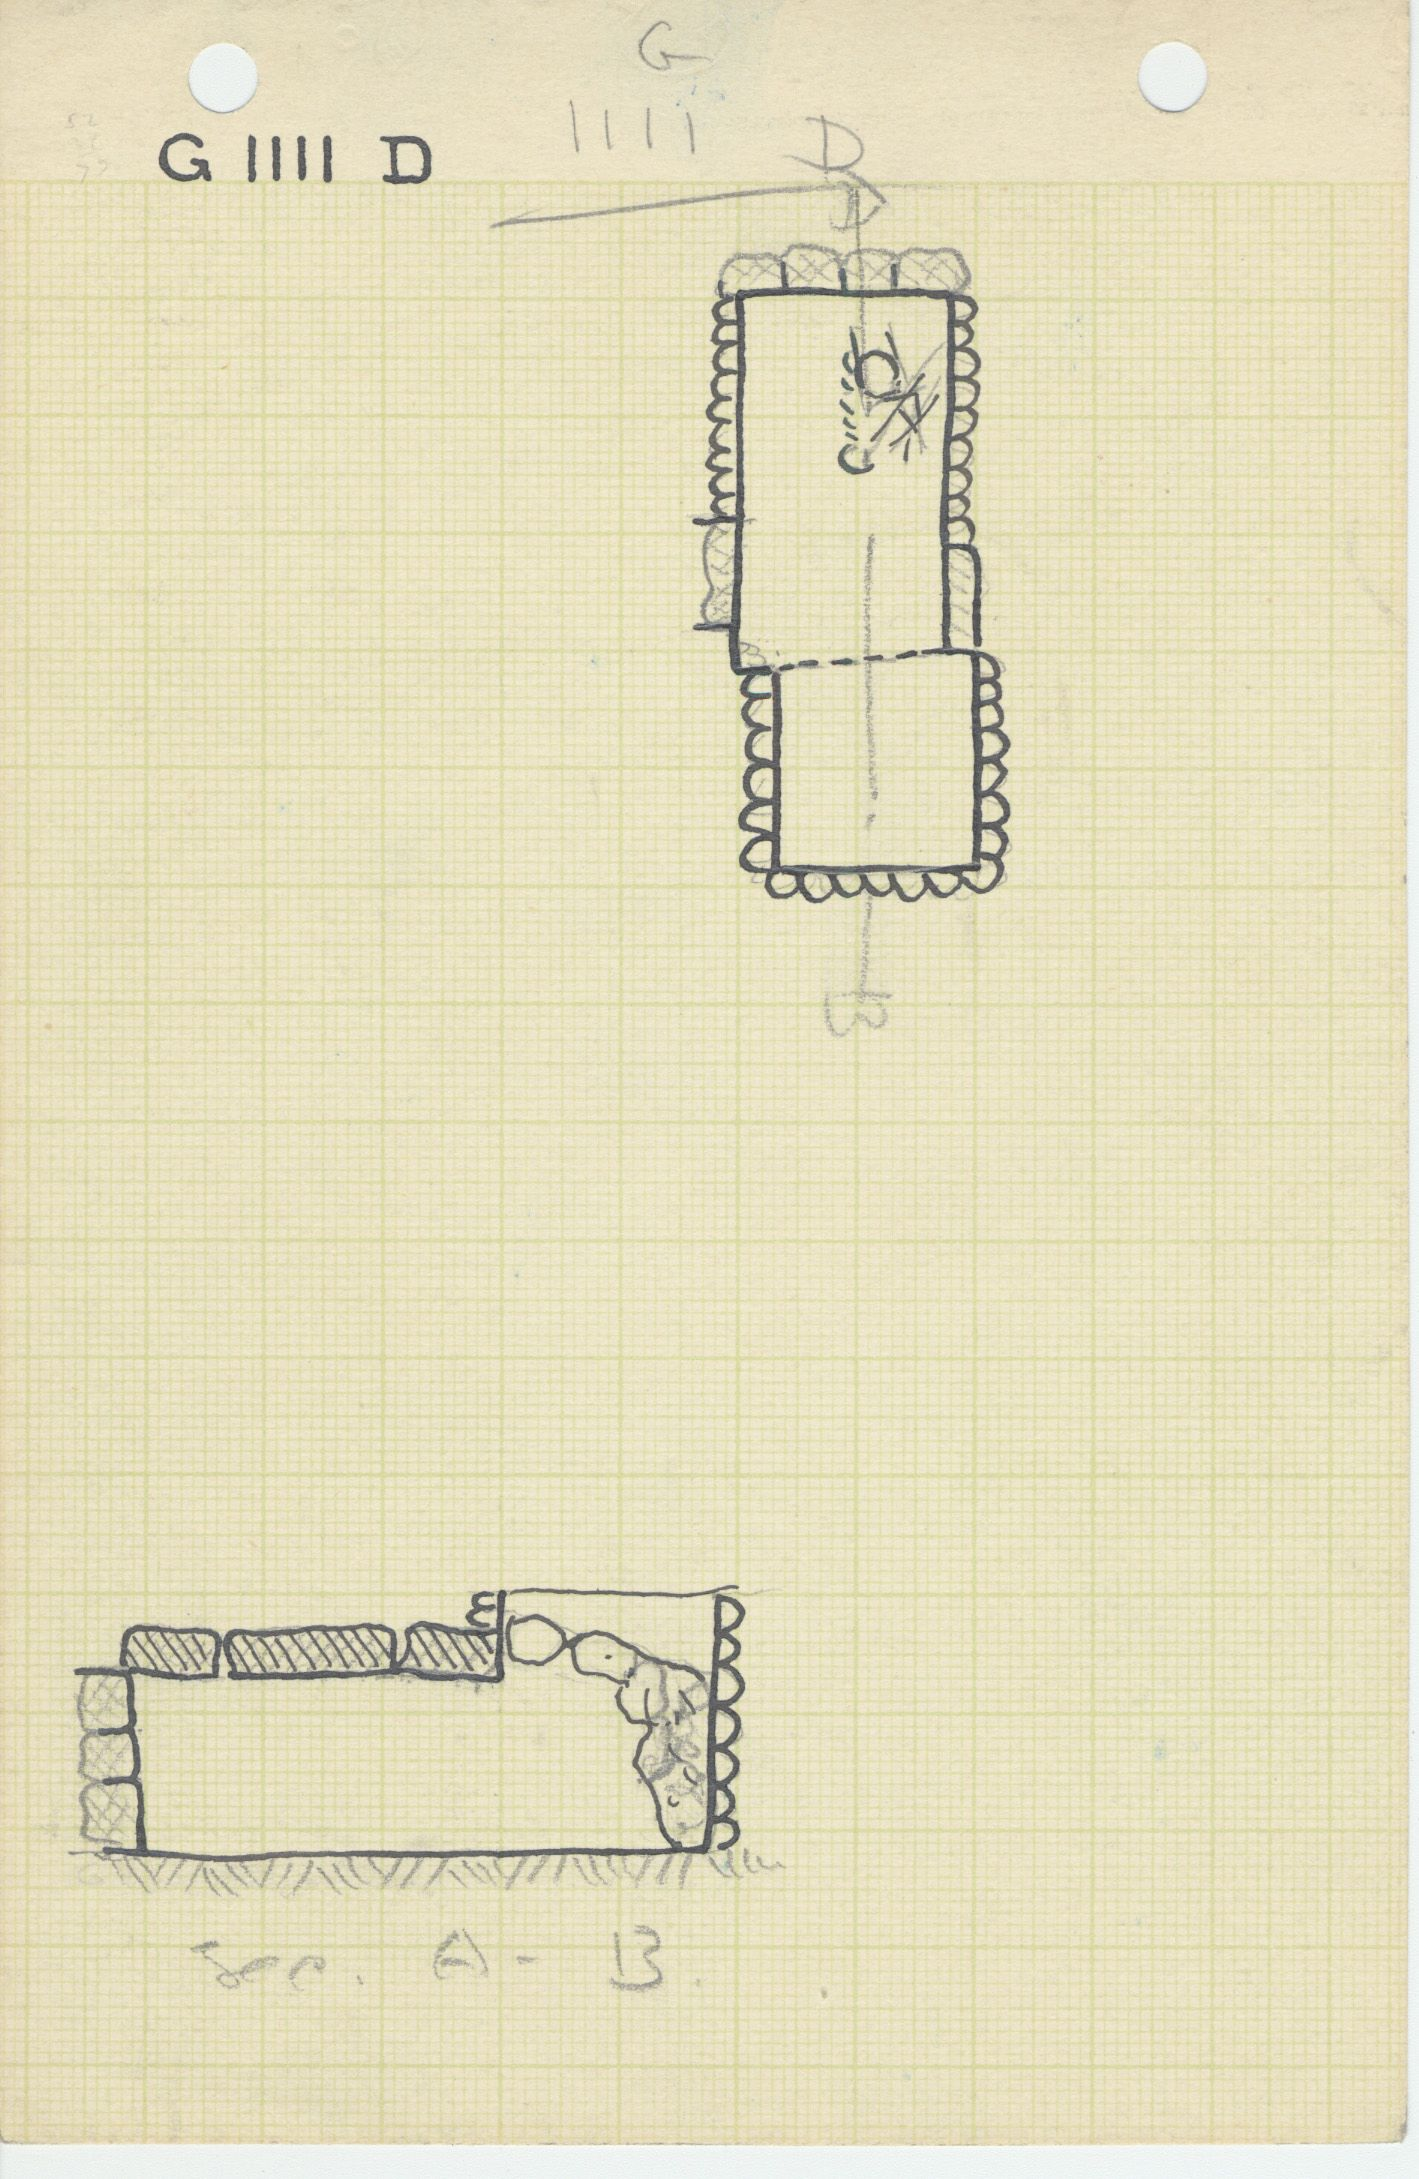 Maps and plans: G 1111, Shaft D